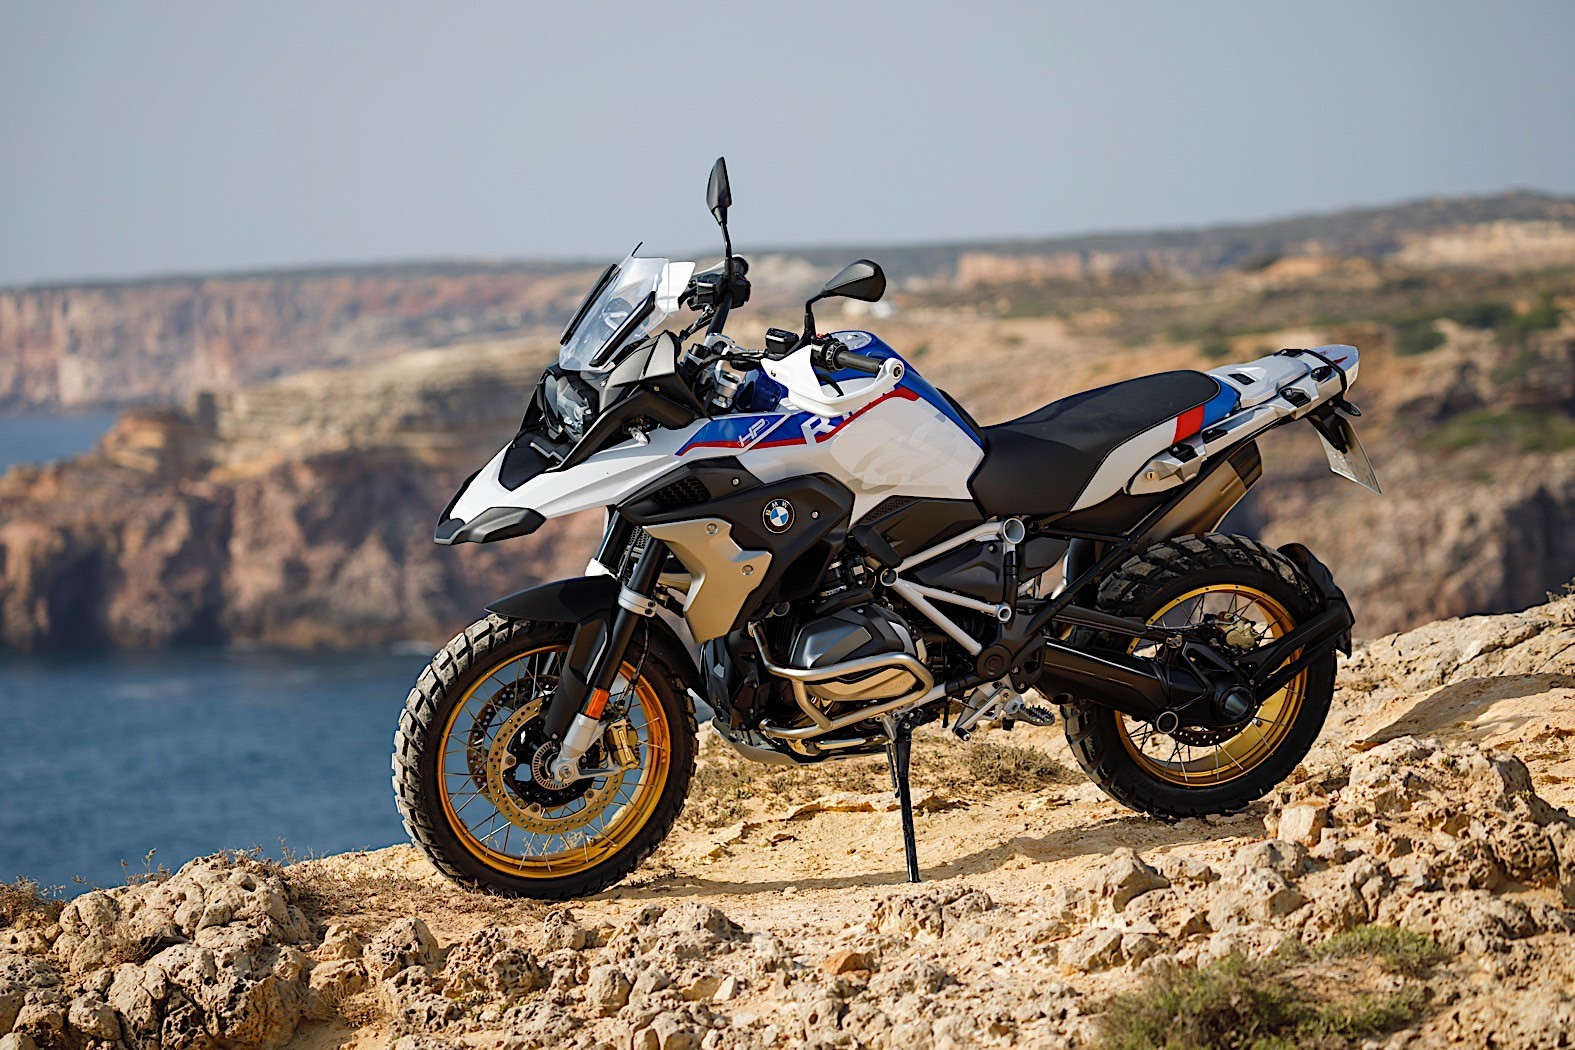 bmw r 1250 gs gets bigger engine with variable valve. Black Bedroom Furniture Sets. Home Design Ideas